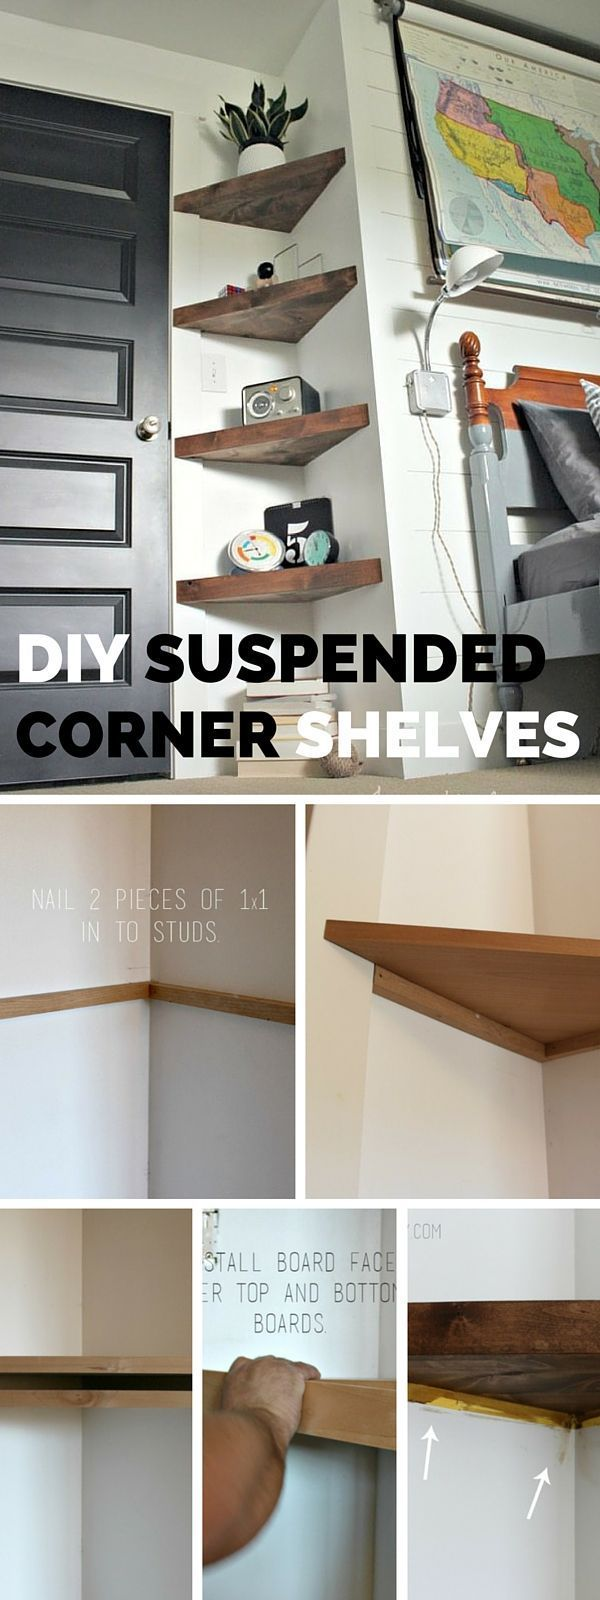 awesome 12 Simply Genius DIY Storage Solutions for a Neat Home by http://www.top10-home-decor-ideas.xyz/diy-home-decor/12-simply-genius-diy-storage-solutions-for-a-neat-home/